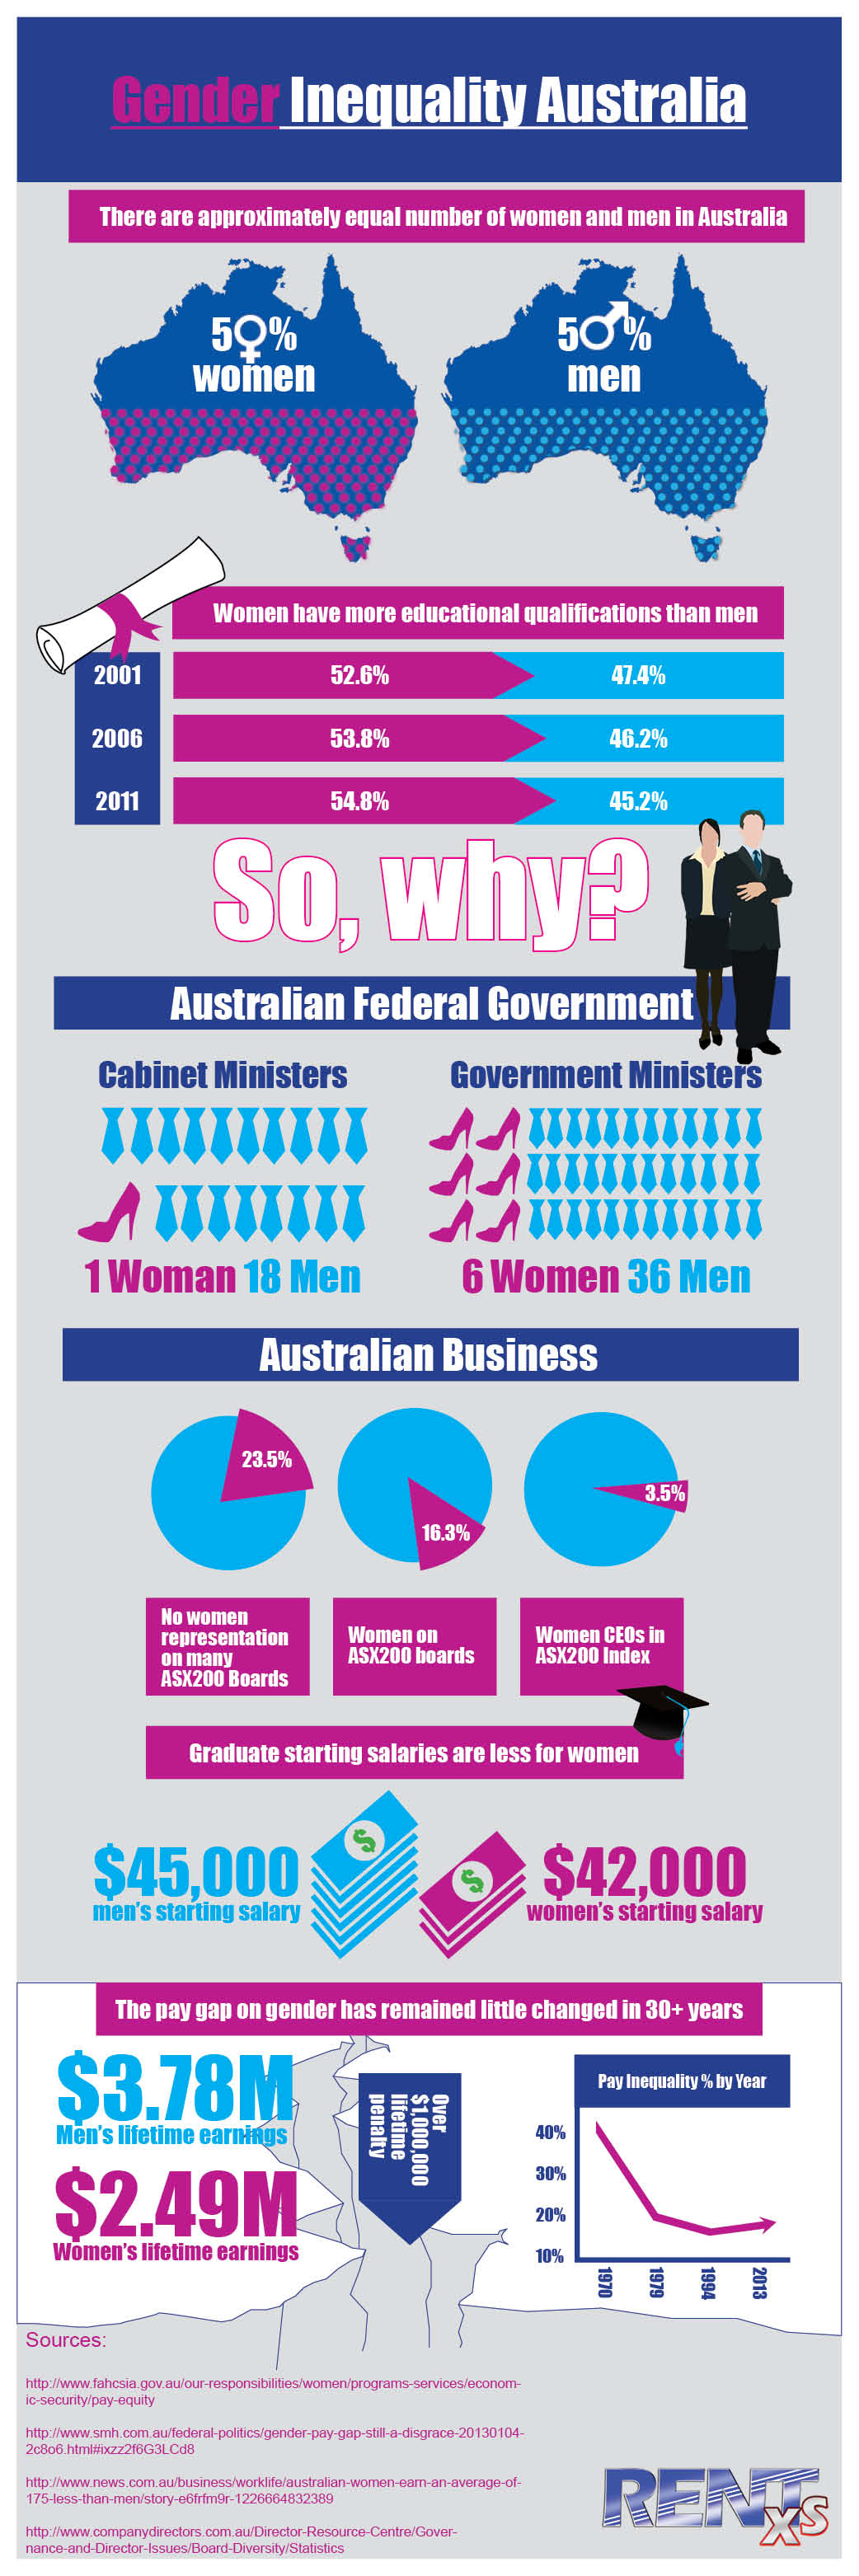 Puts A Lot Of Attention On An Important Issue With Small Graphic Changes Gender Inequality Inequality Infographic